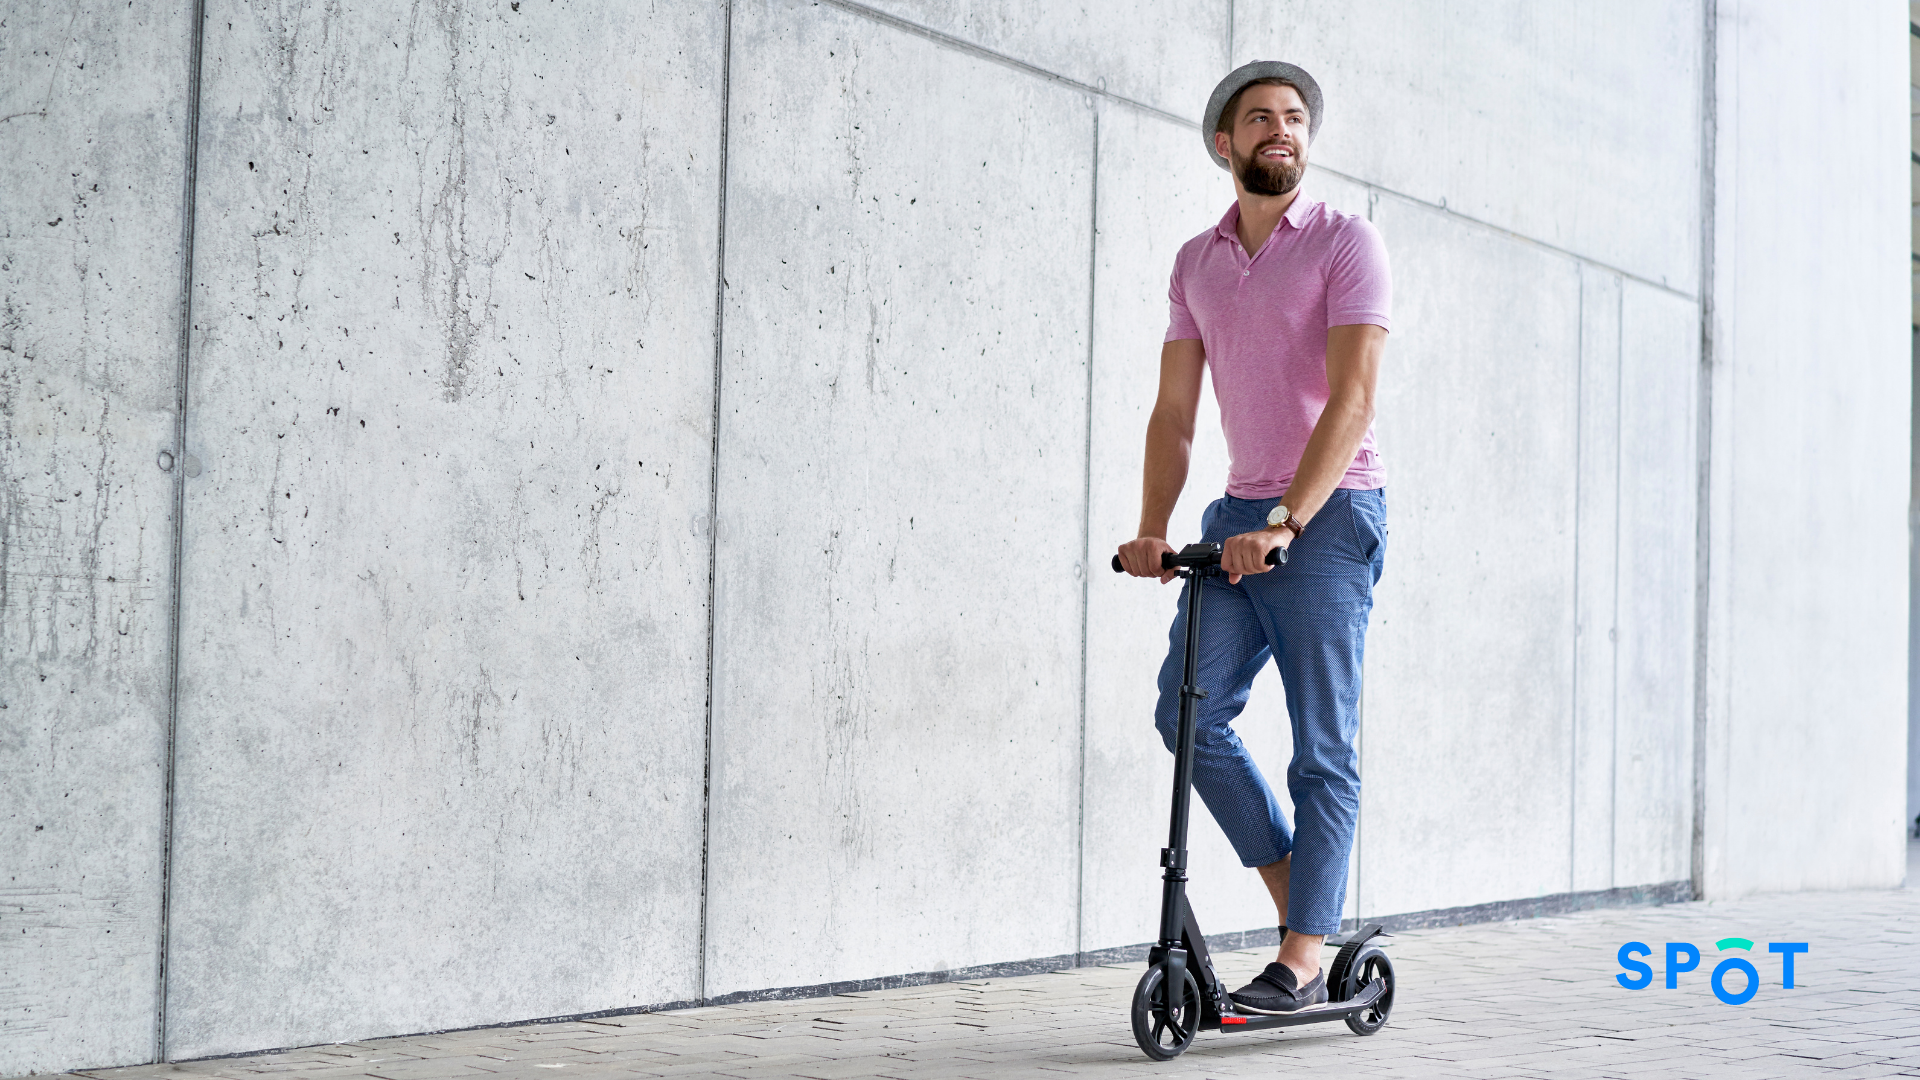 A person riding a scooter, micromobility can empower communities to move more sustainable